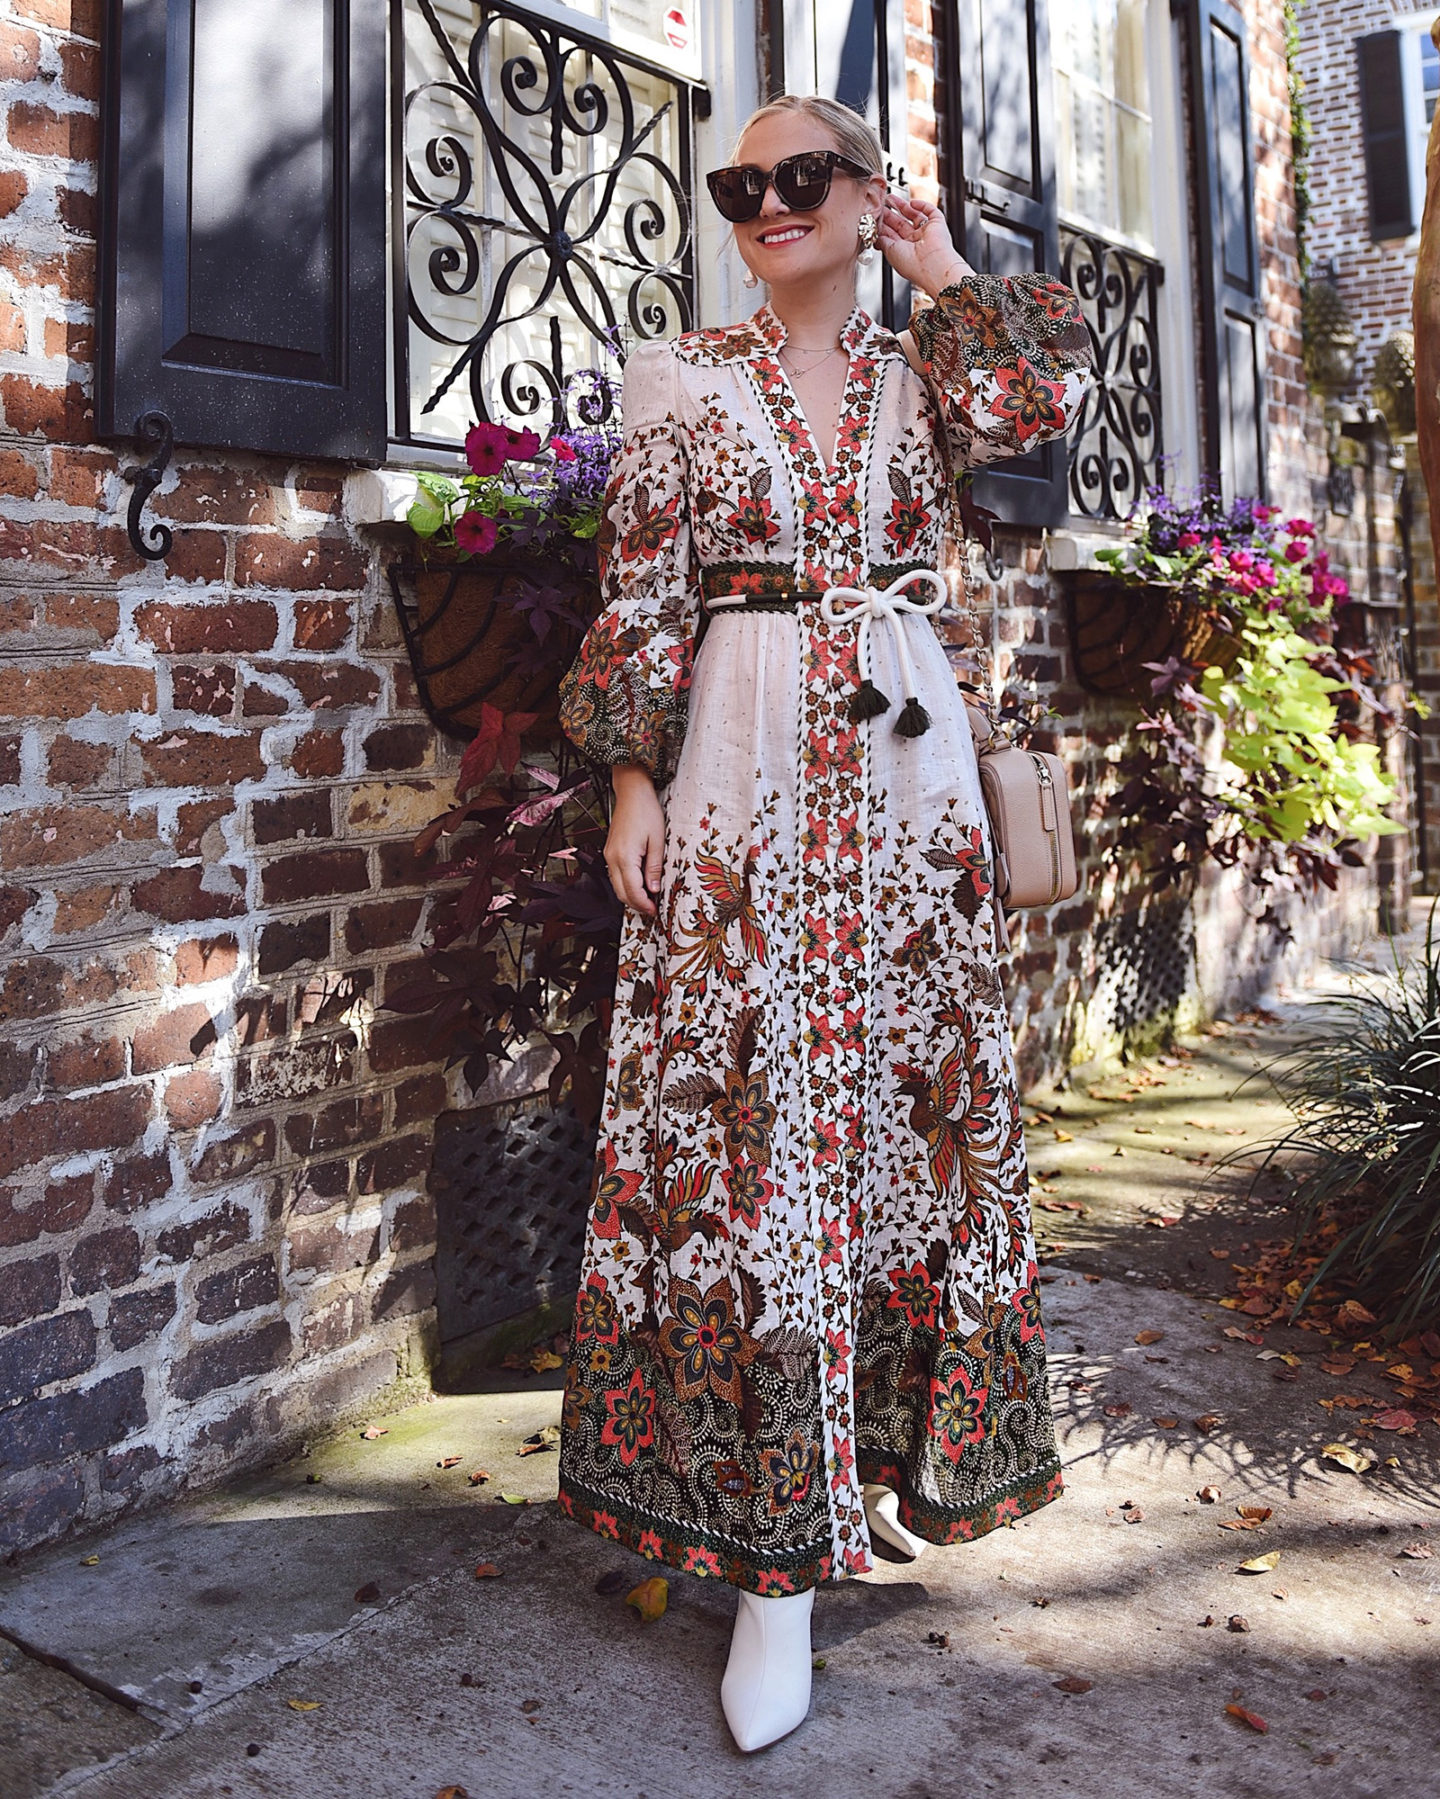 lo-murphy-fall-dress-white-booties-zimmermann-dress-fall-style-charleston